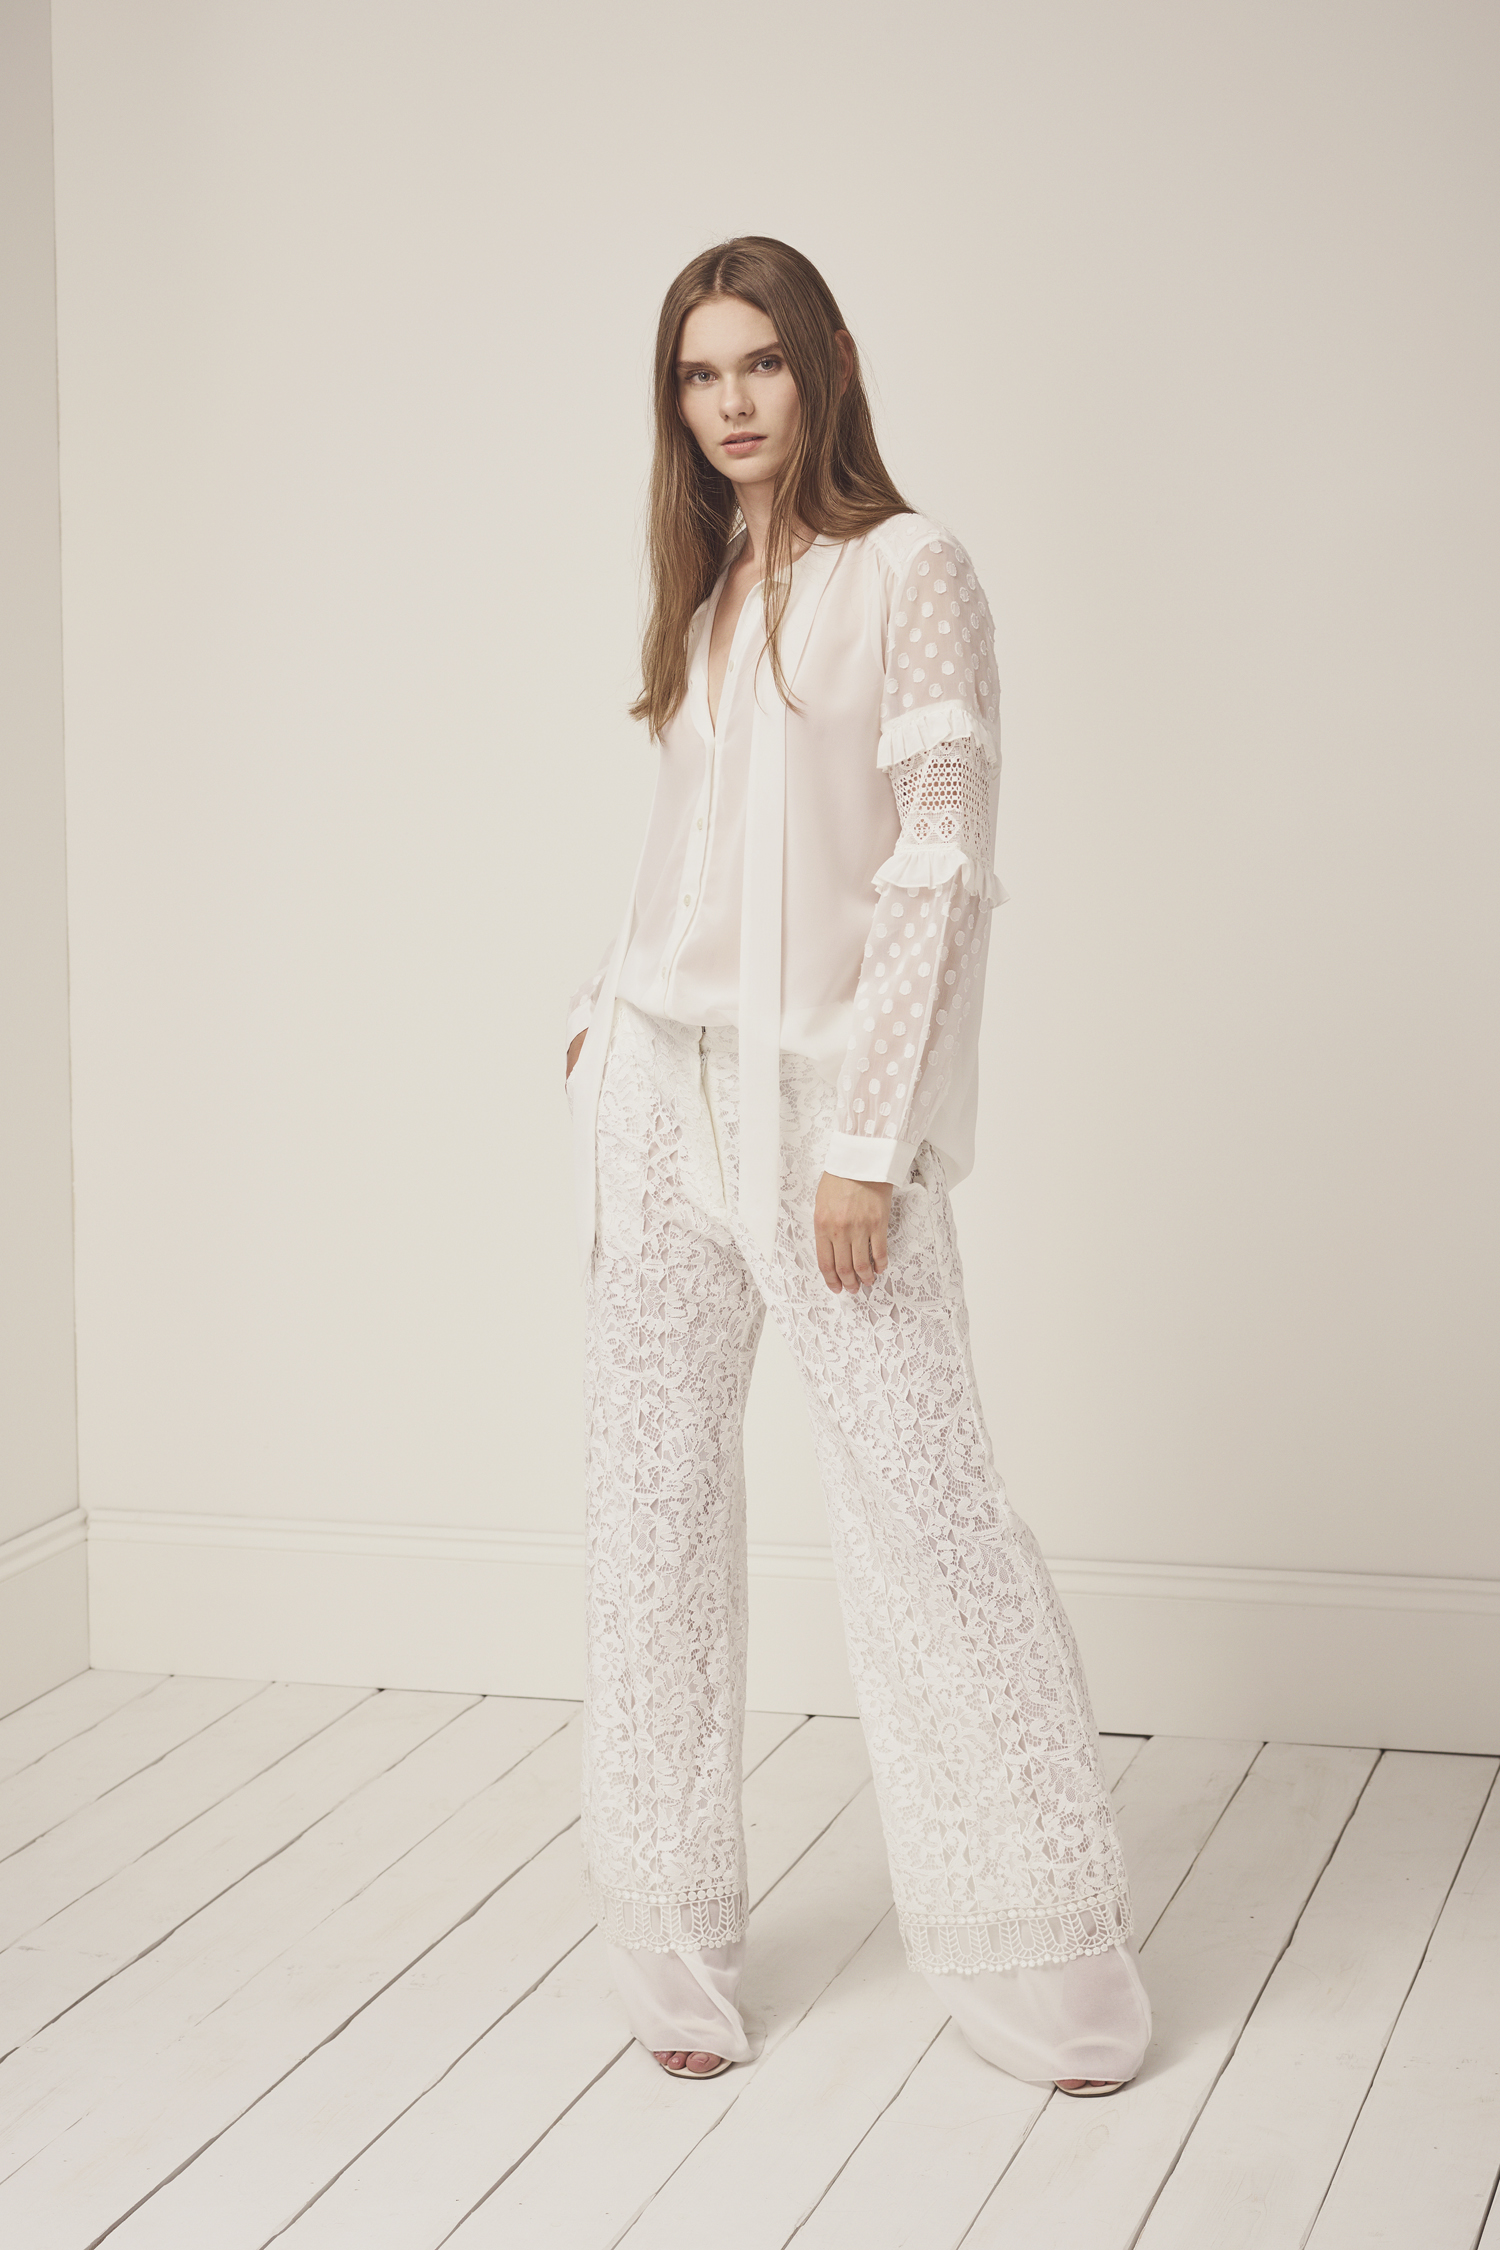 Arta Lace Layer Trousers - white